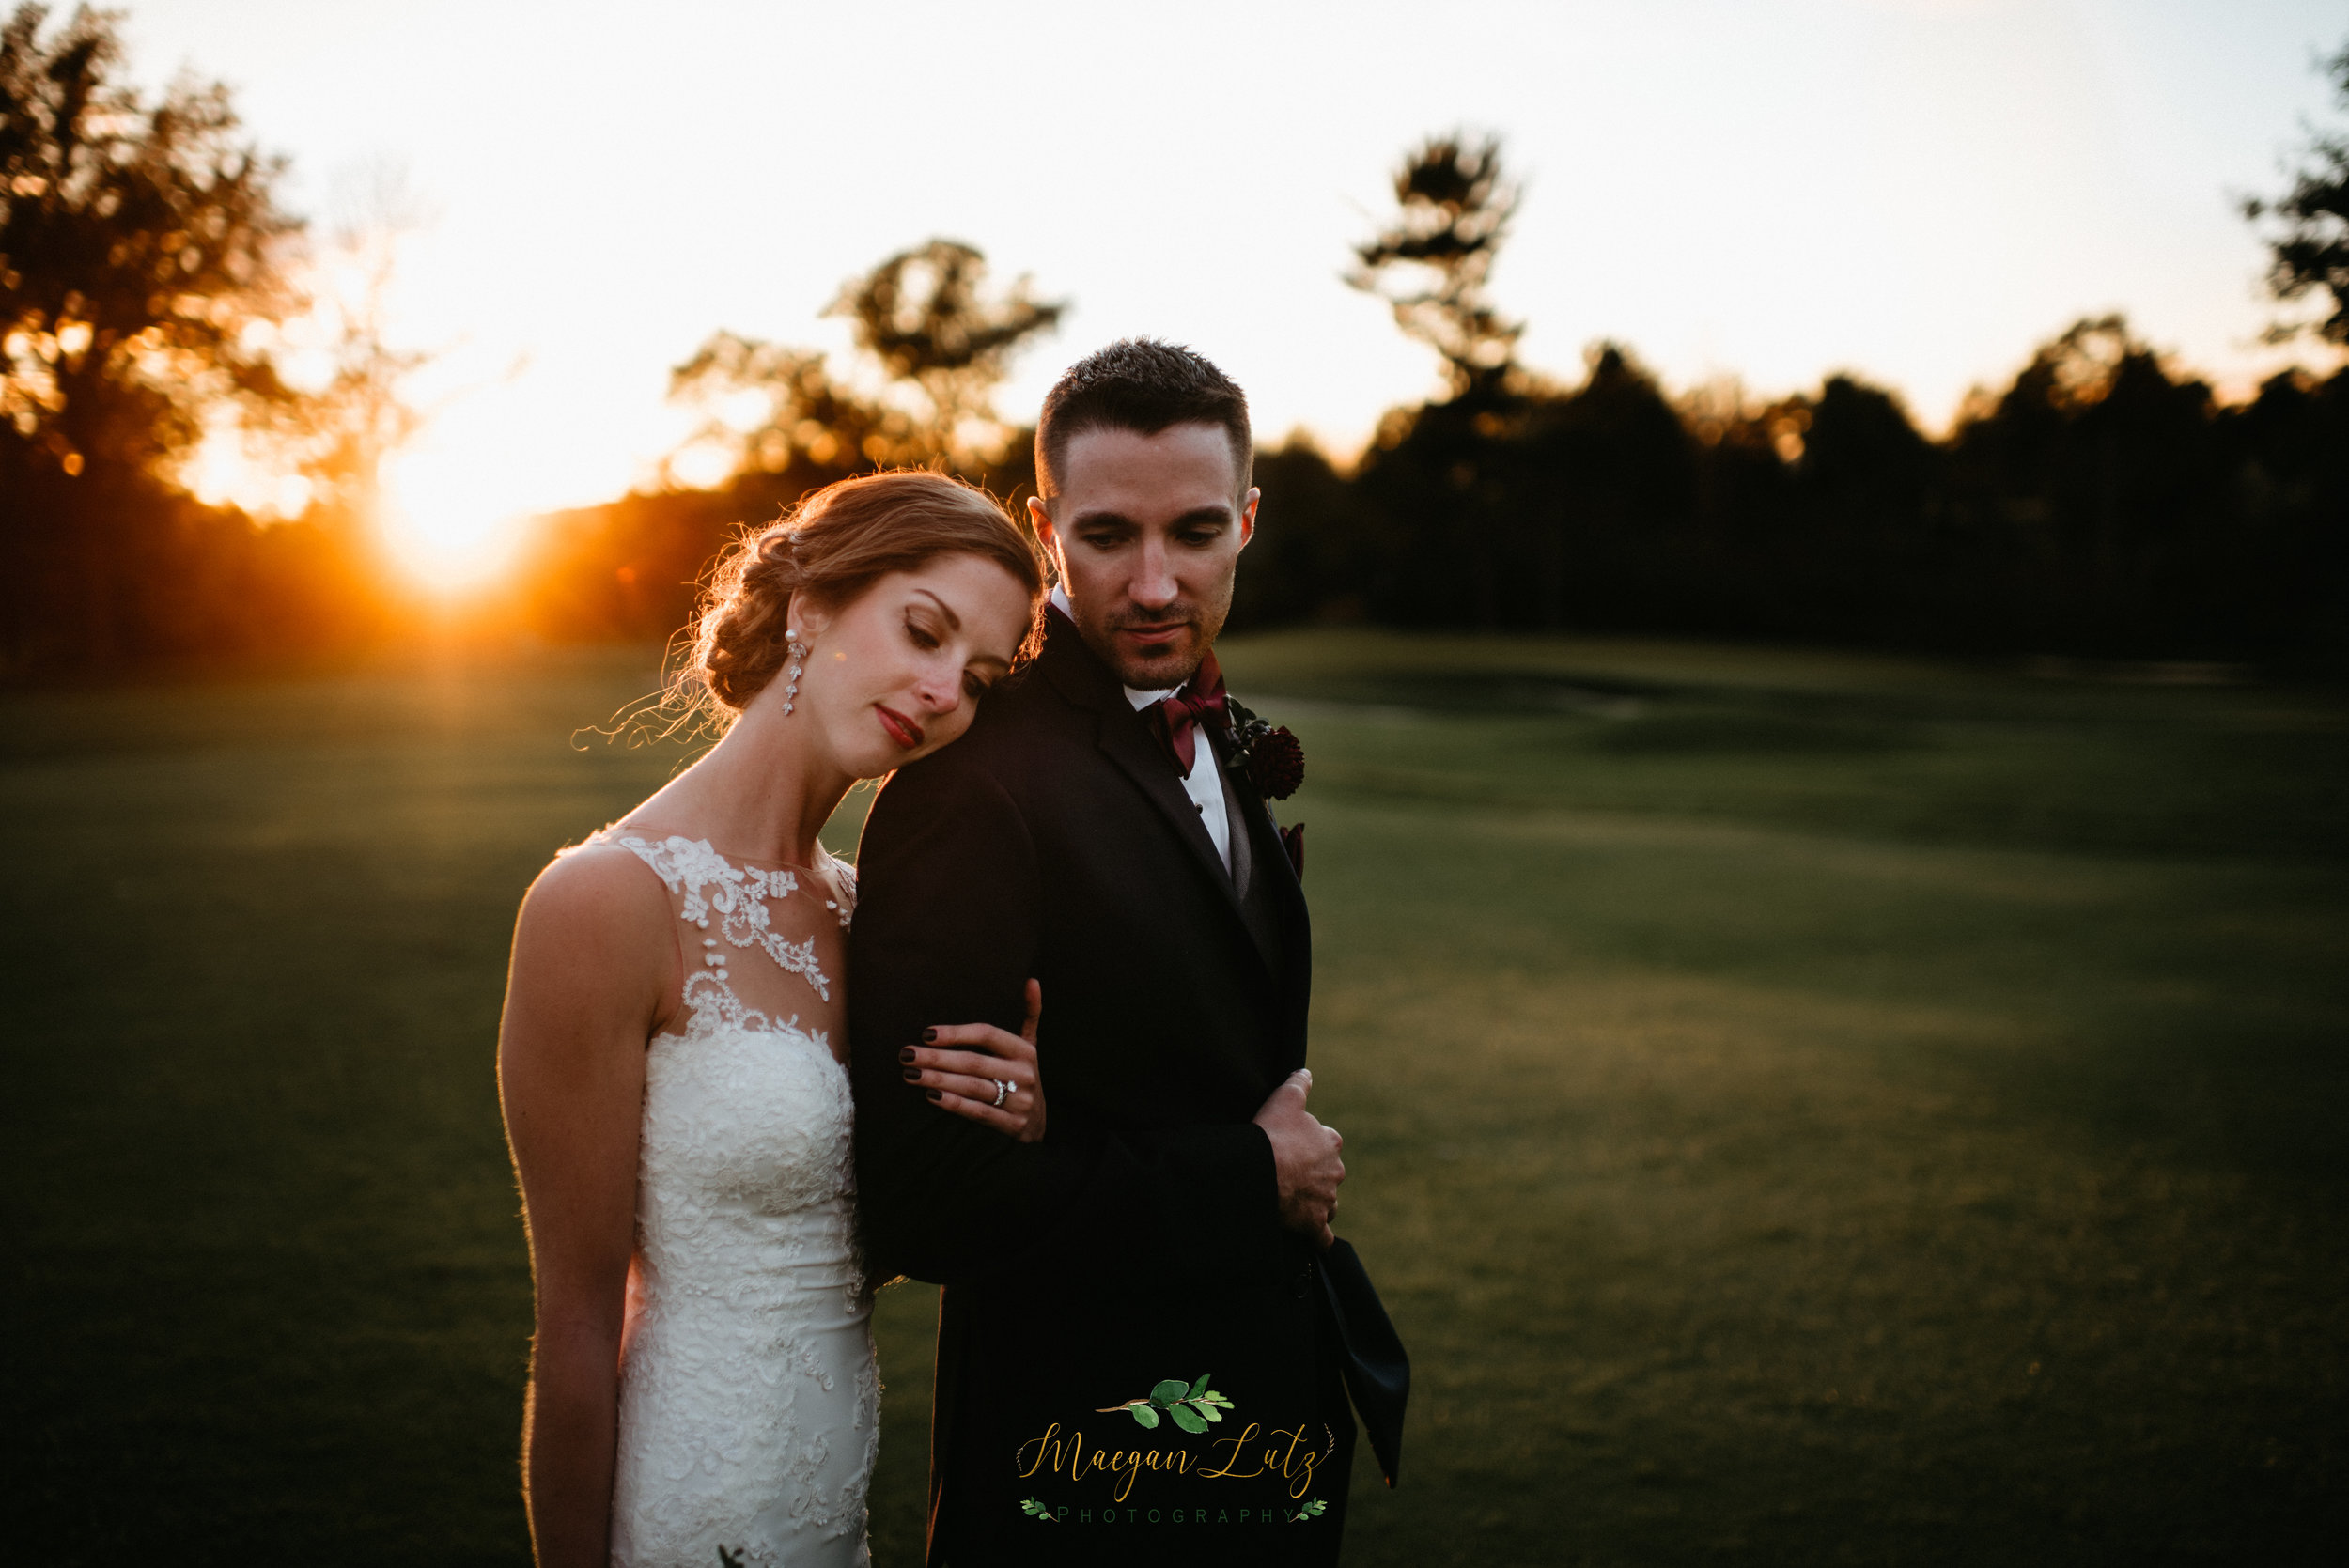 Melissa & Lee - Glen Oak Country Club, Clarks Summit, PA